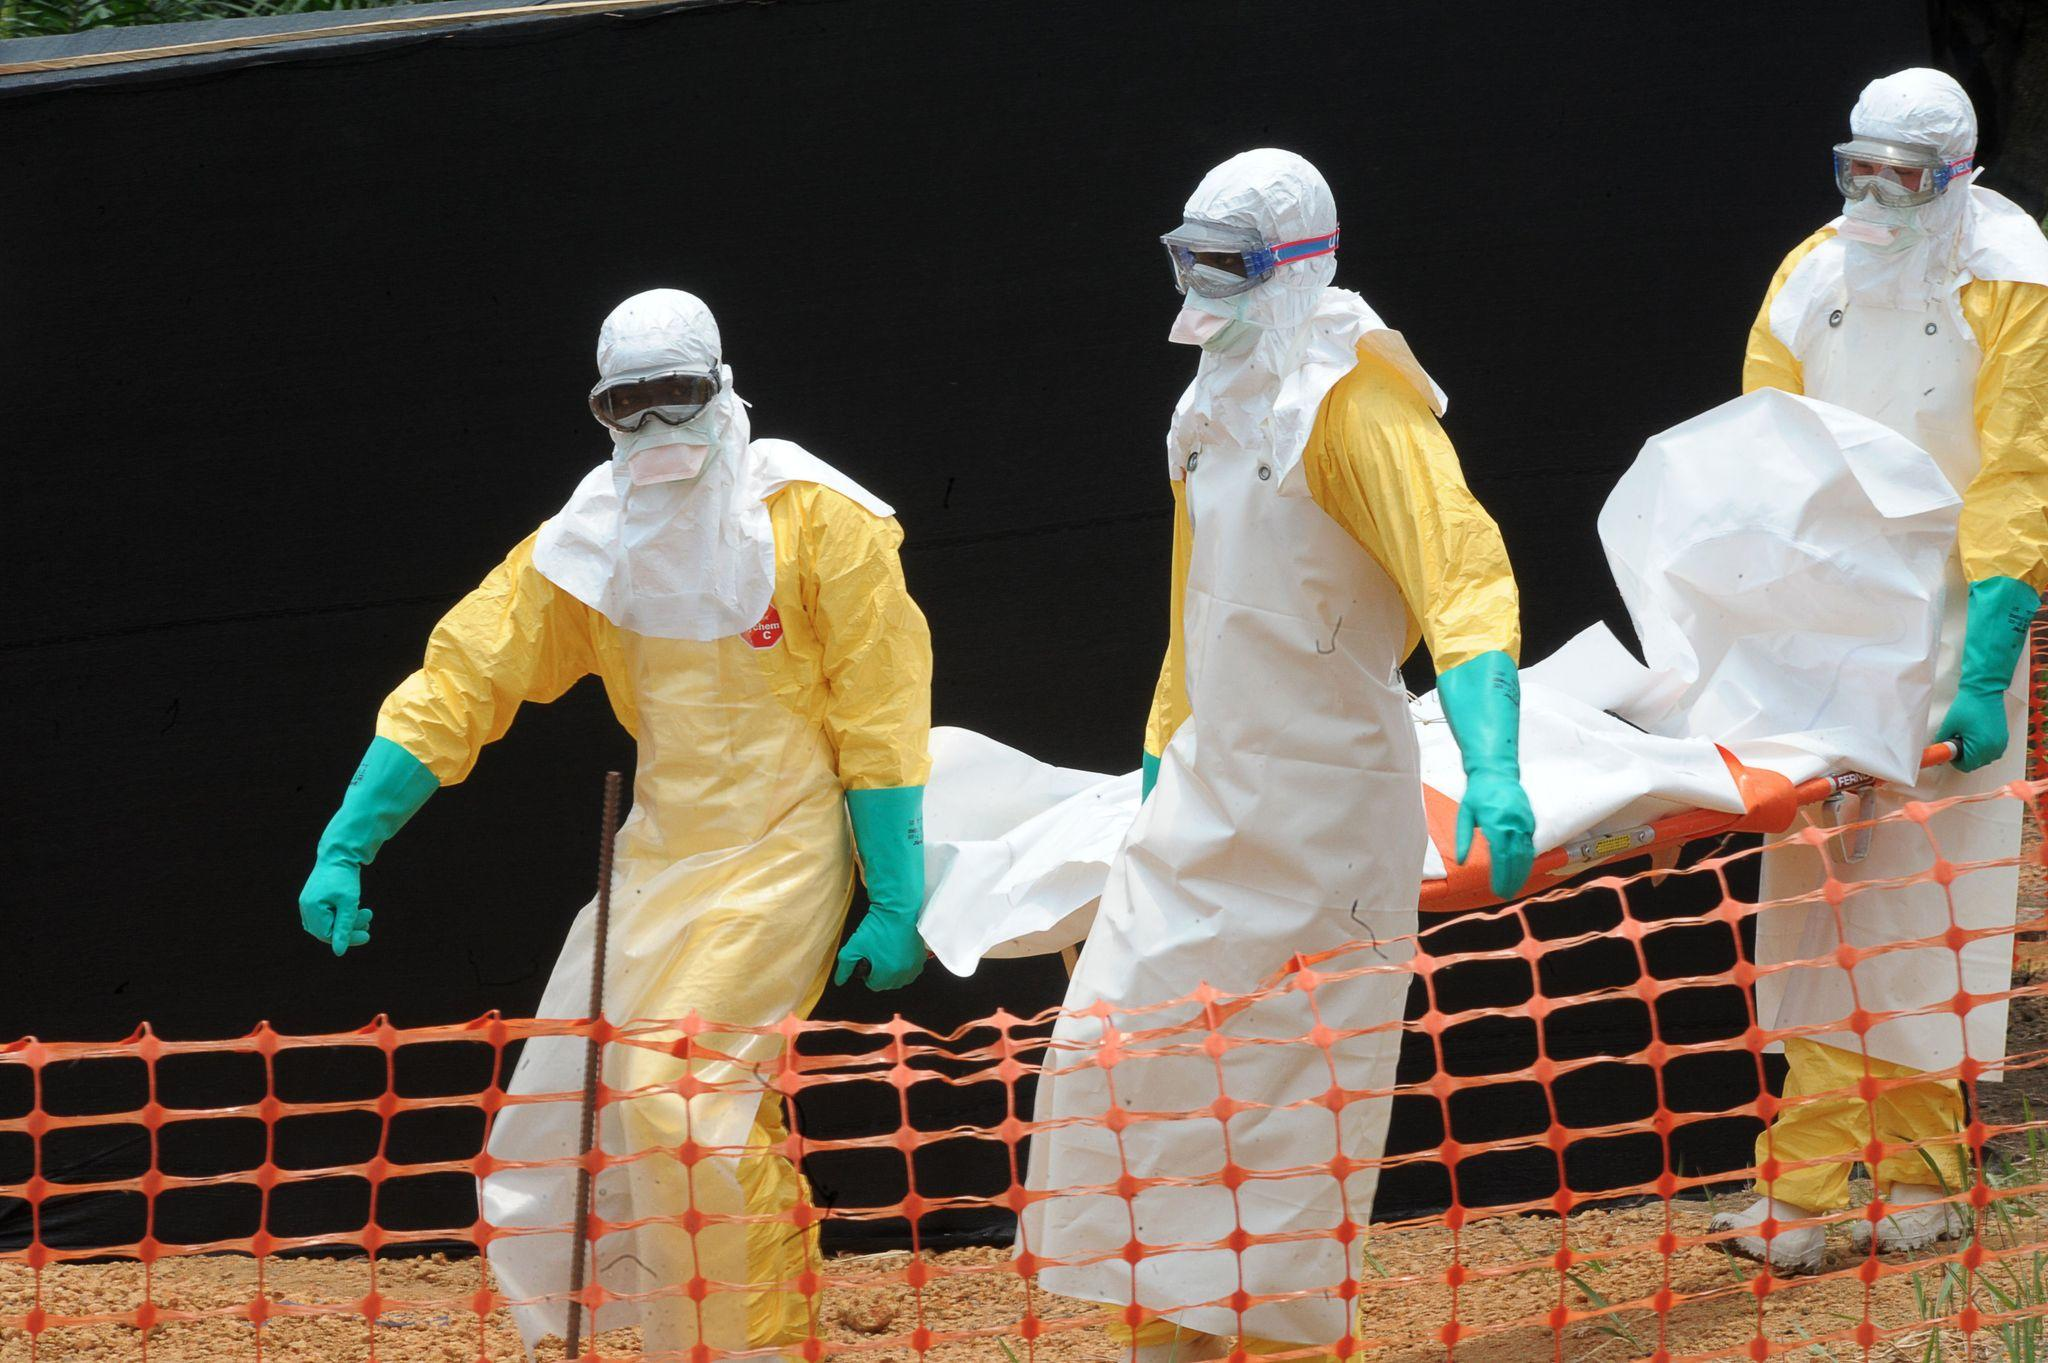 More than 200 people have died from the highly contagious Ebola virus in Guinea, Africa in 2014.